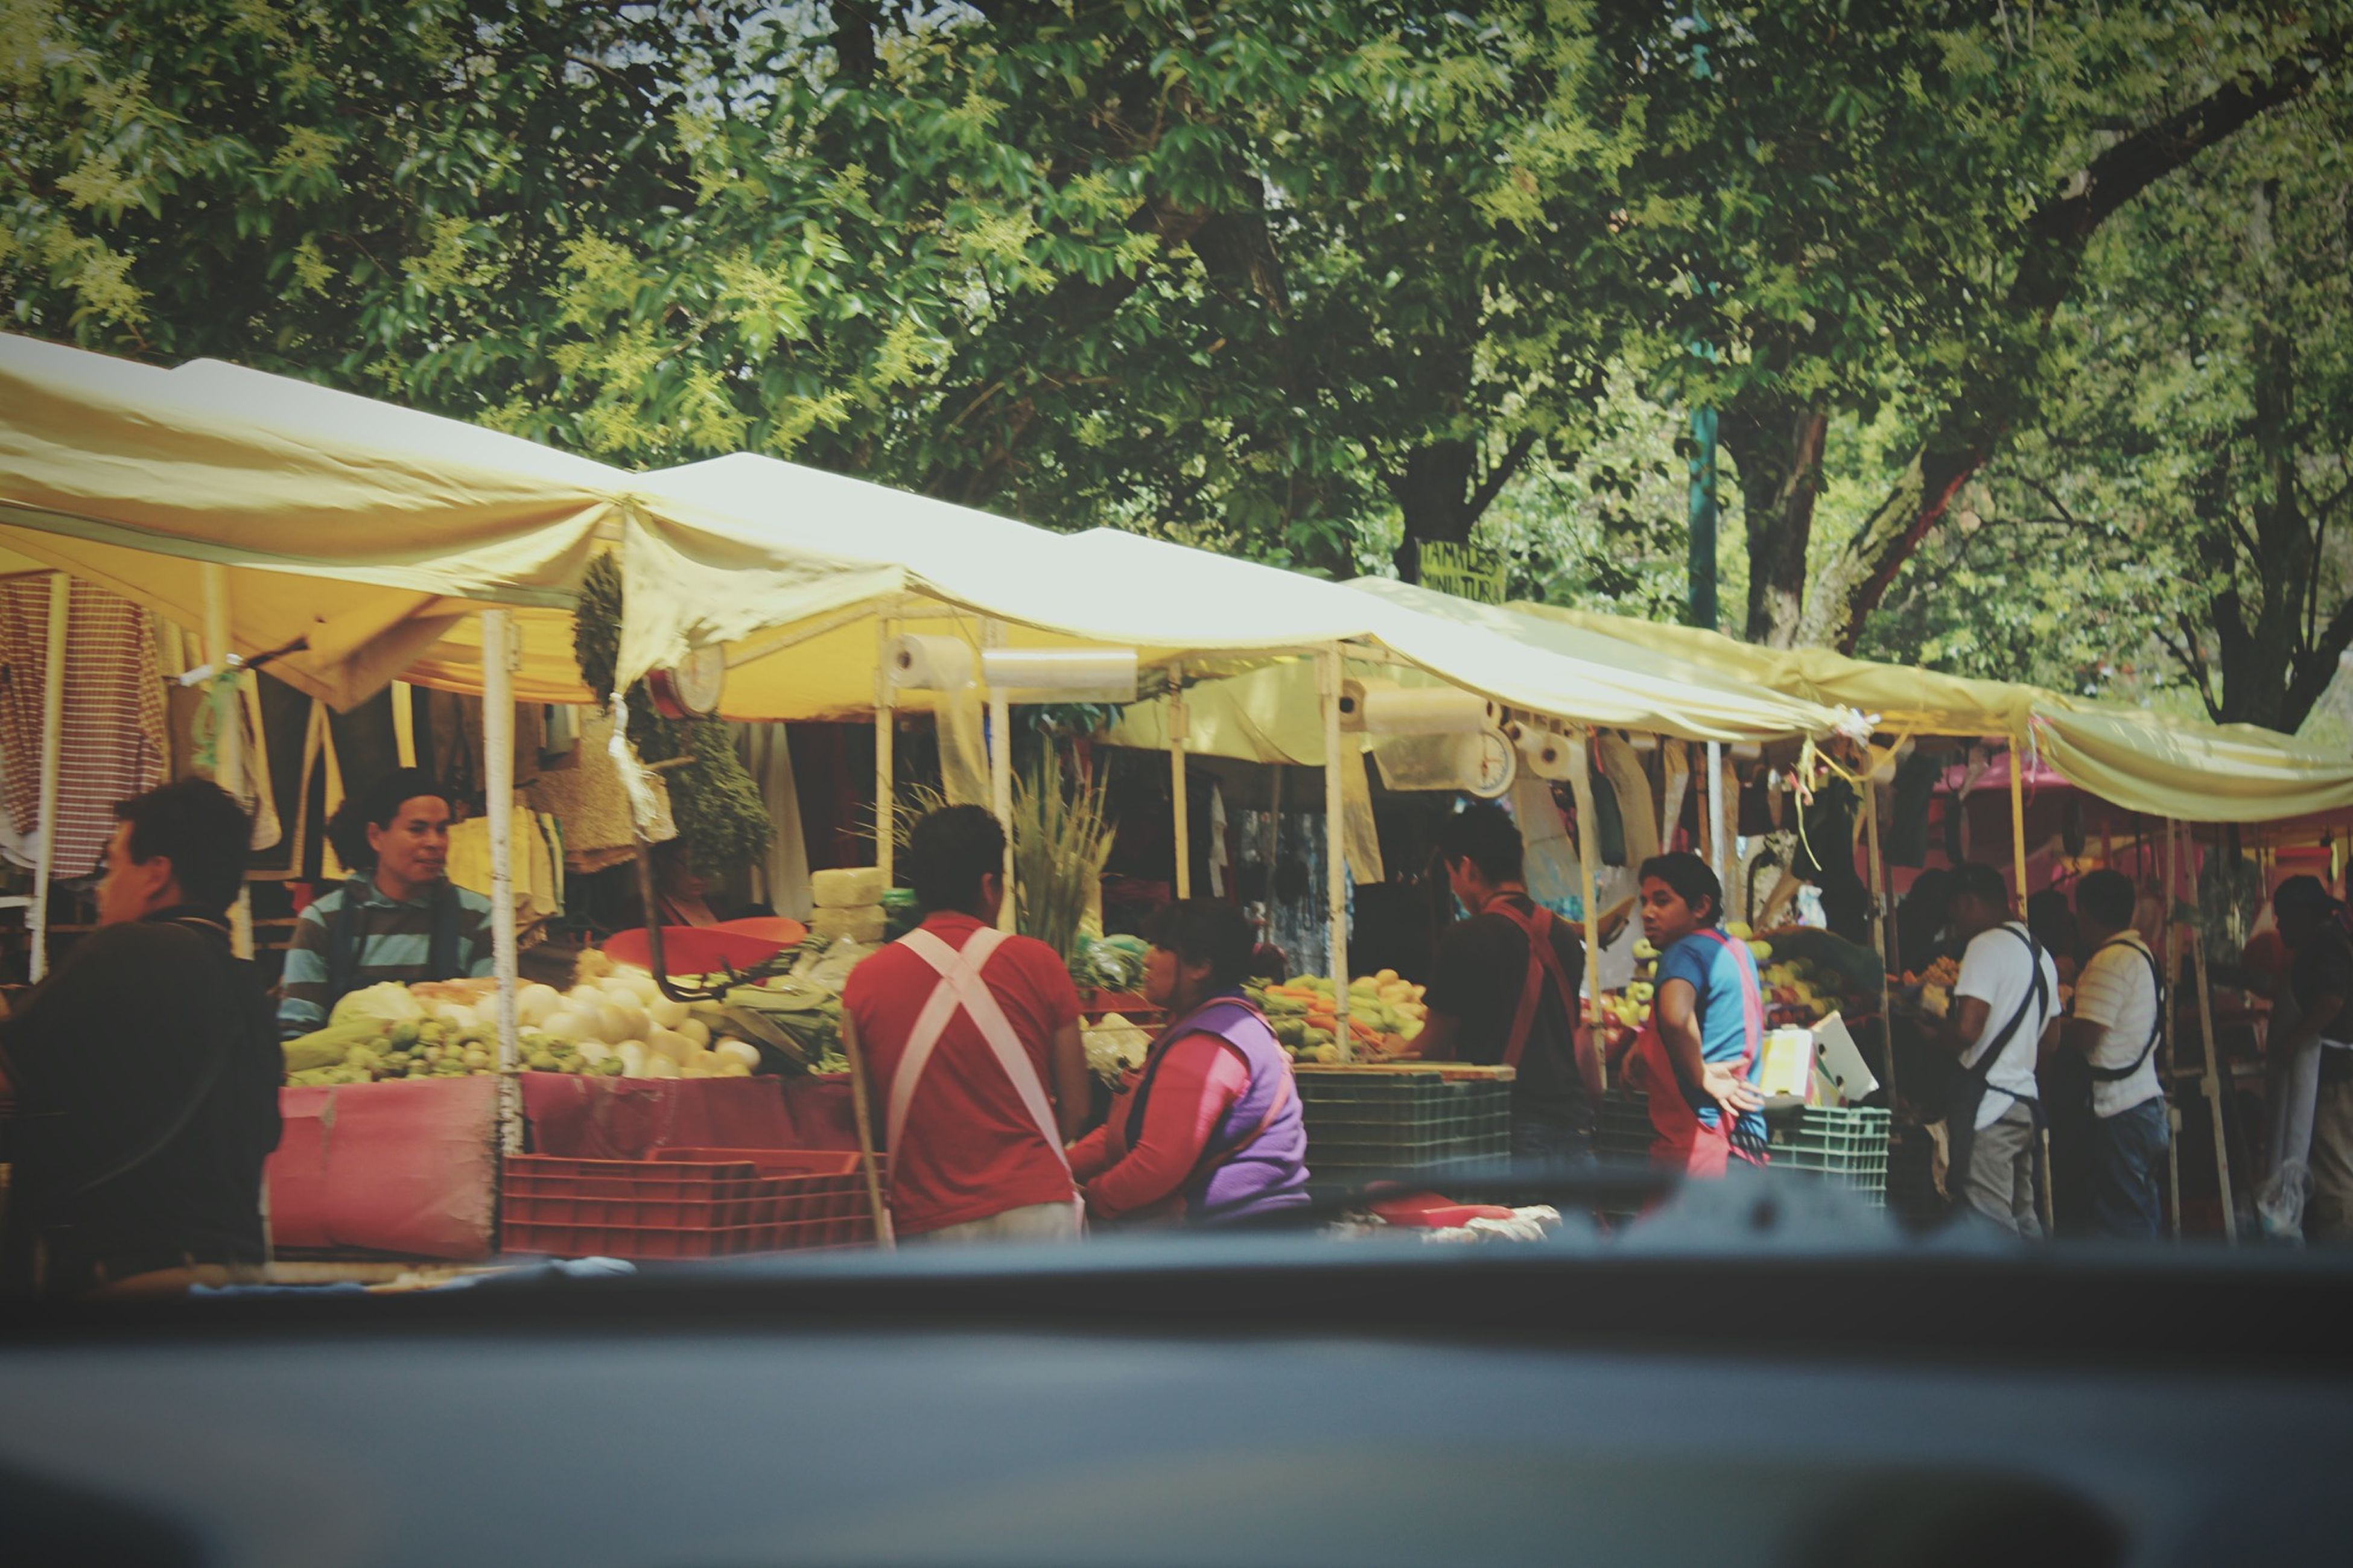 tree, person, men, lifestyles, built structure, table, food and drink, leisure activity, large group of people, architecture, tradition, market stall, incidental people, cultures, day, retail, market, outdoors, culture